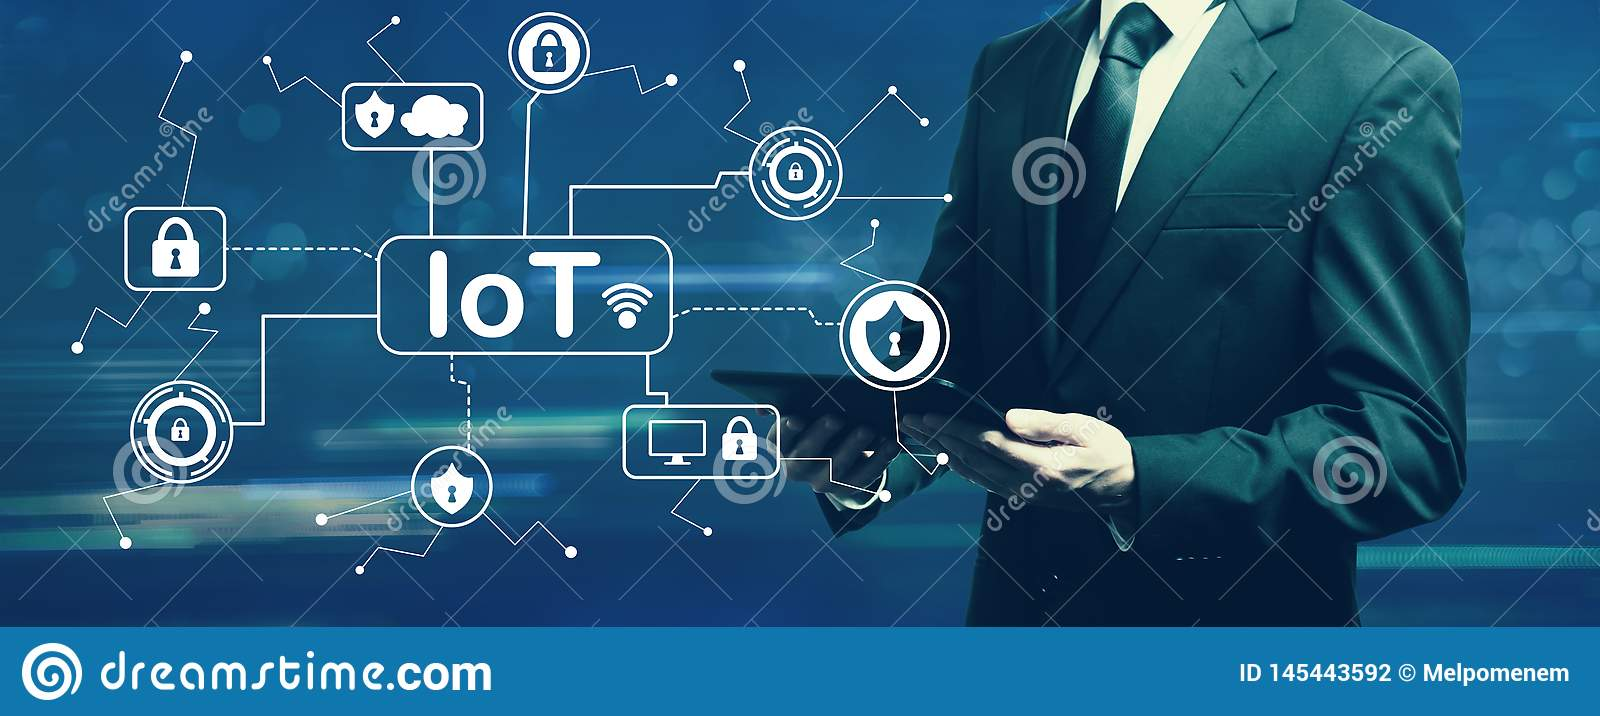 IoT security theme with businessman